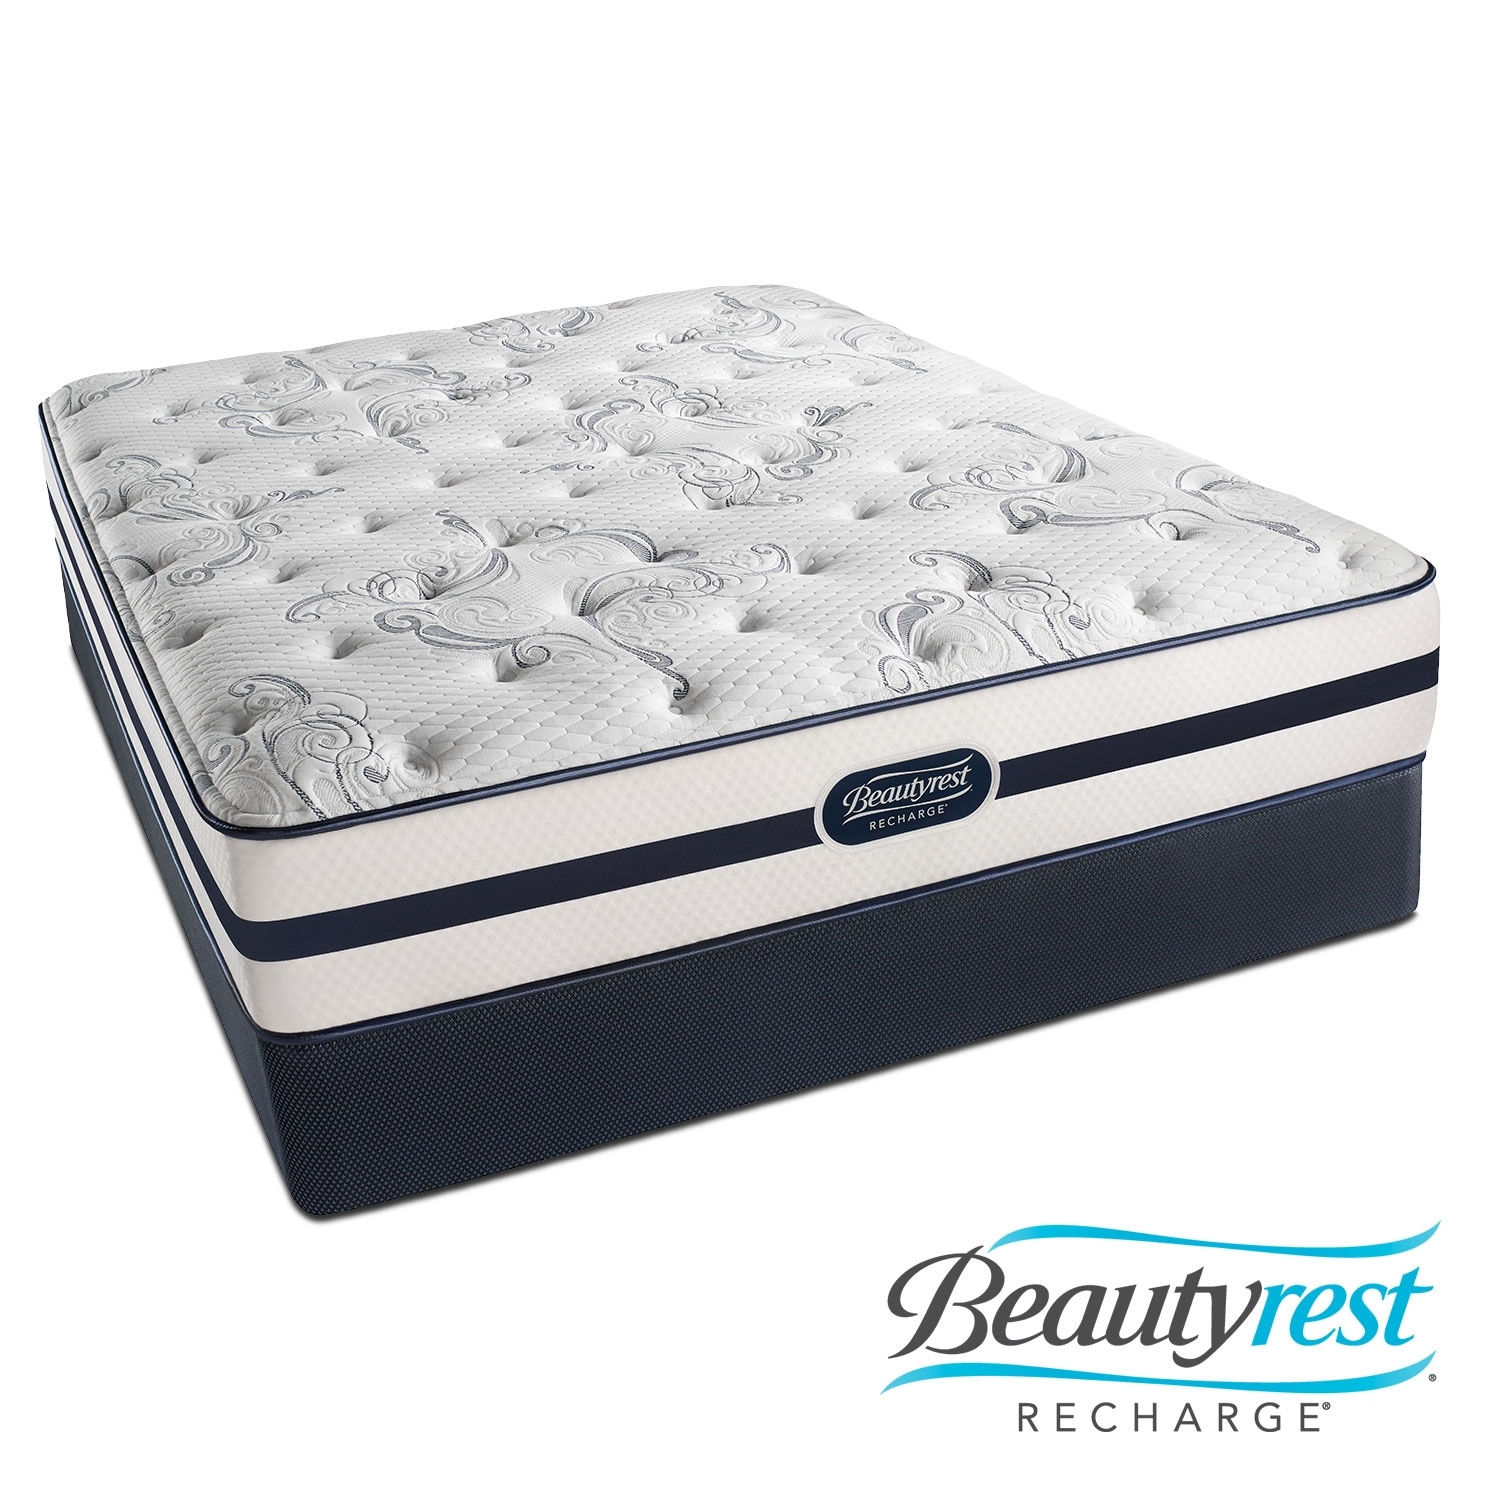 Mattresses and Bedding - Justine Plush Queen Mattress/Low Profile Foundation Set